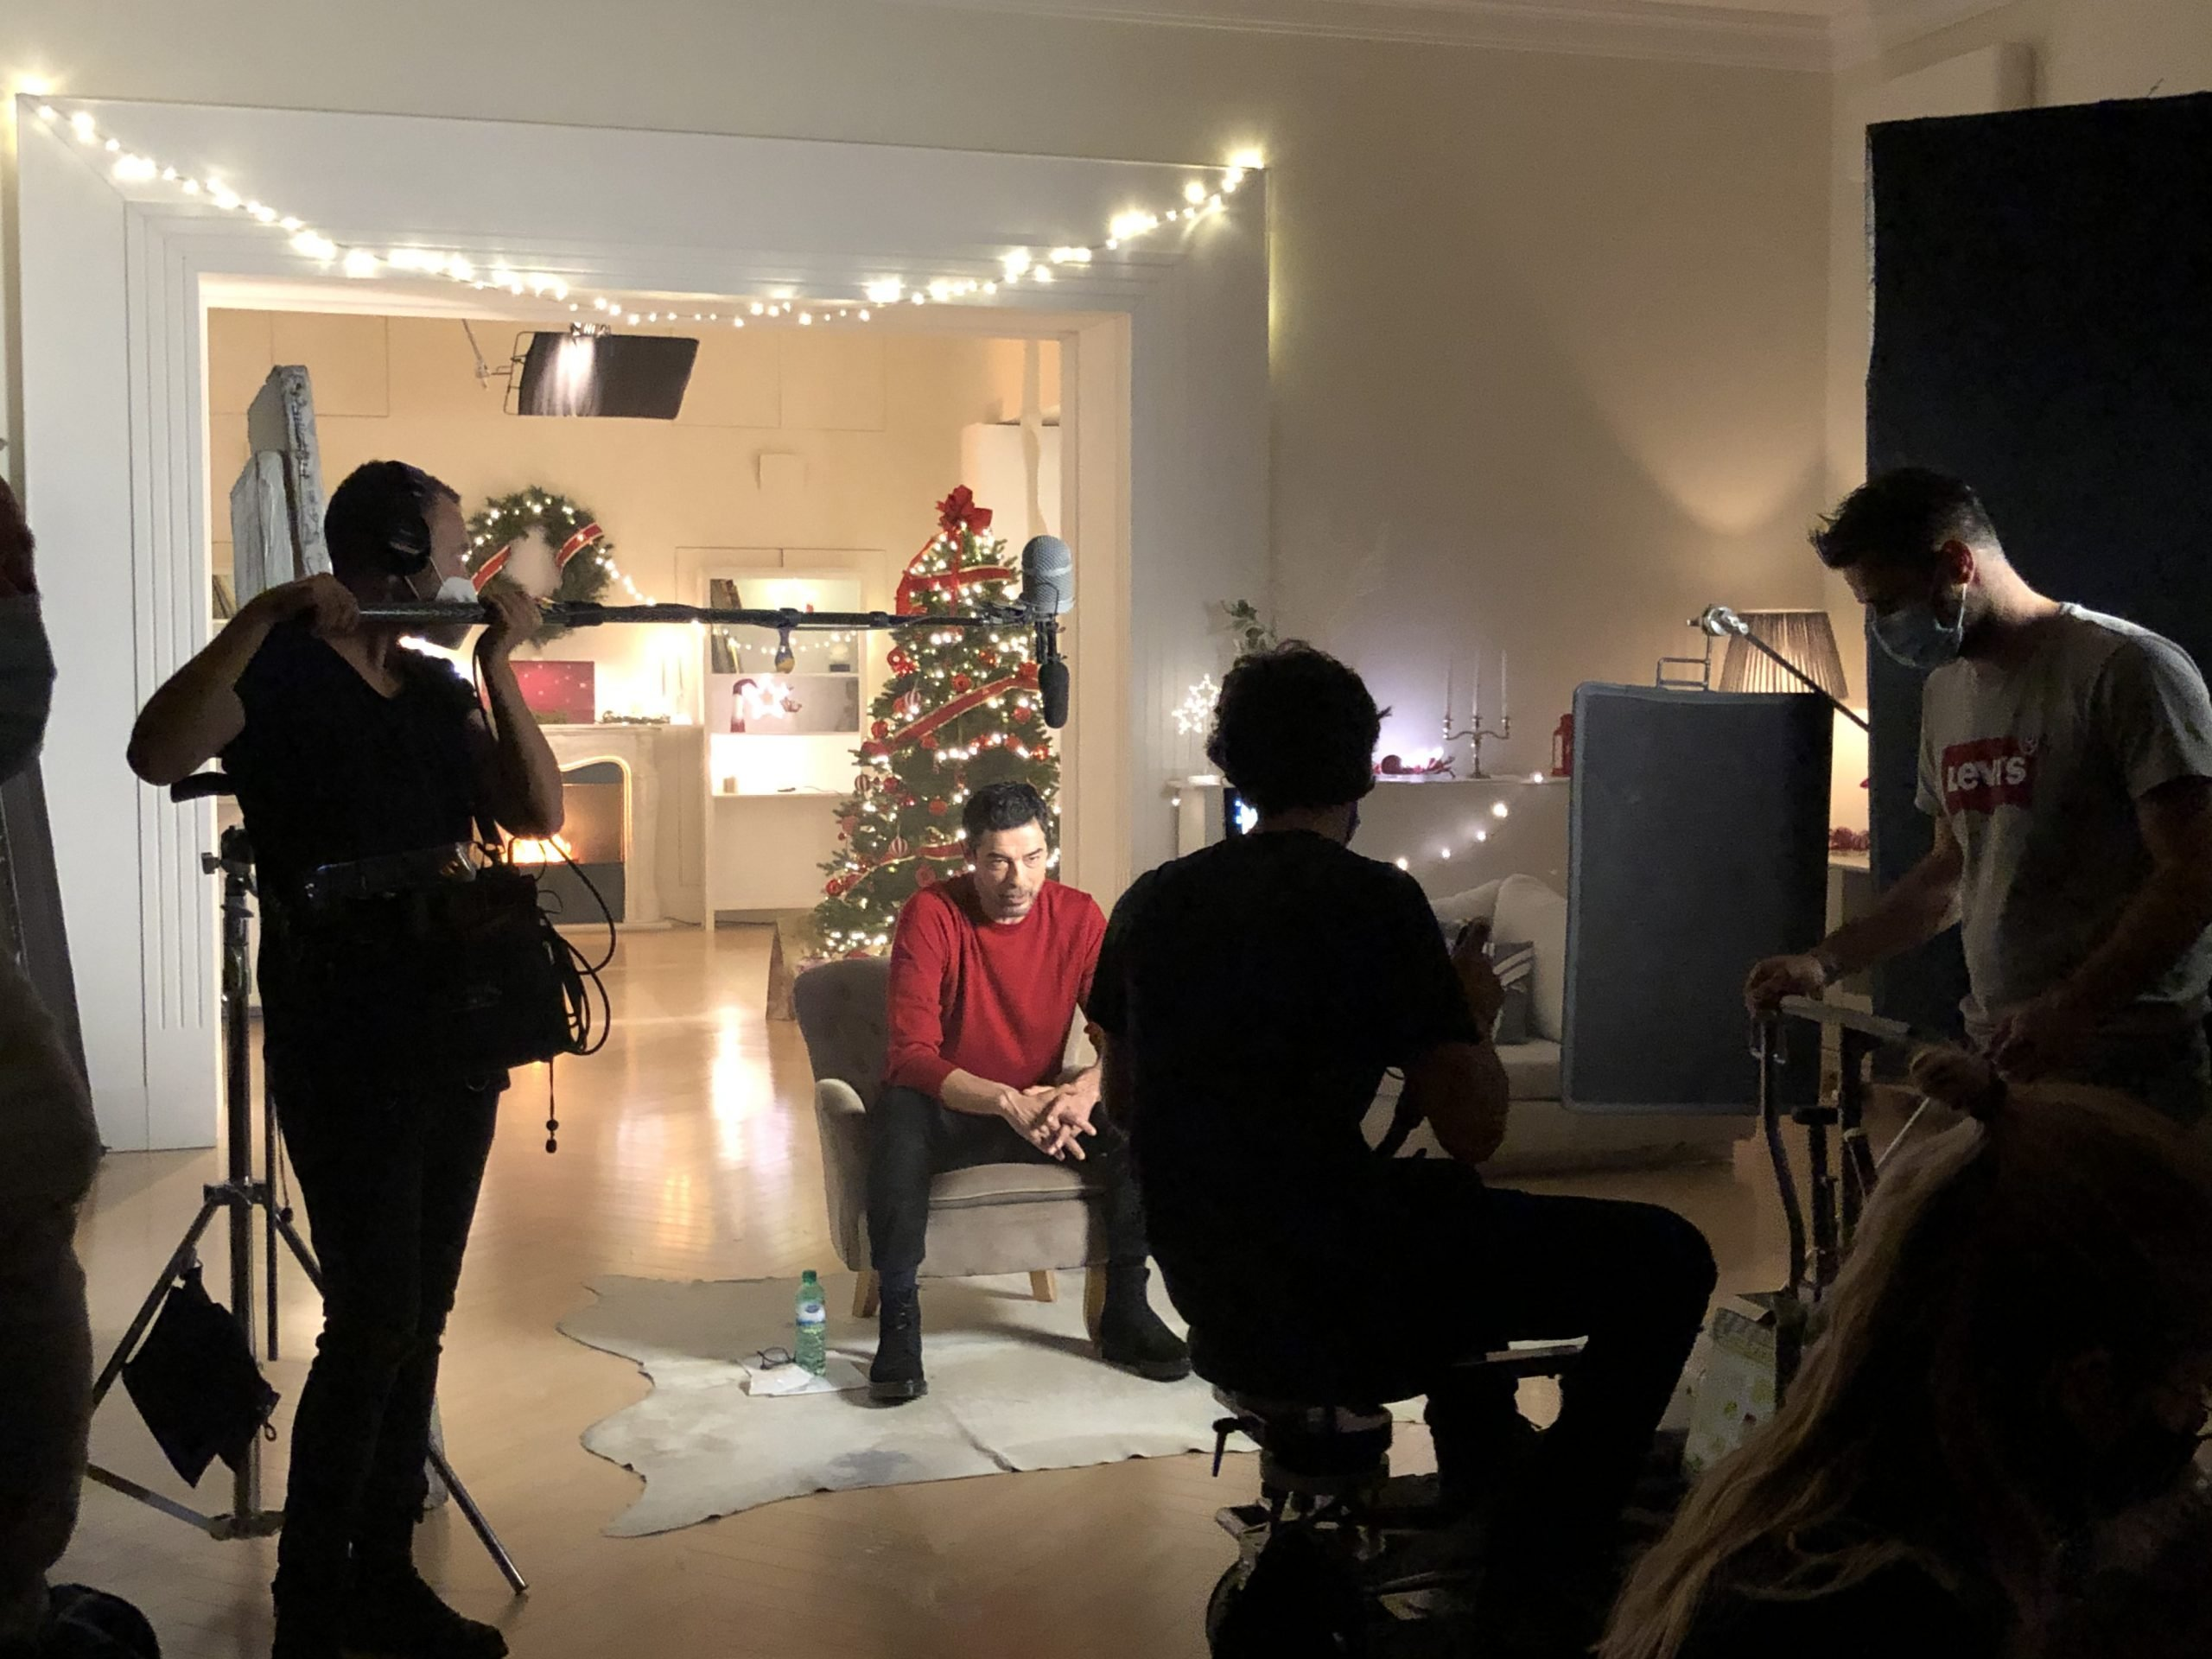 Sky cinema Christmas – backstage2